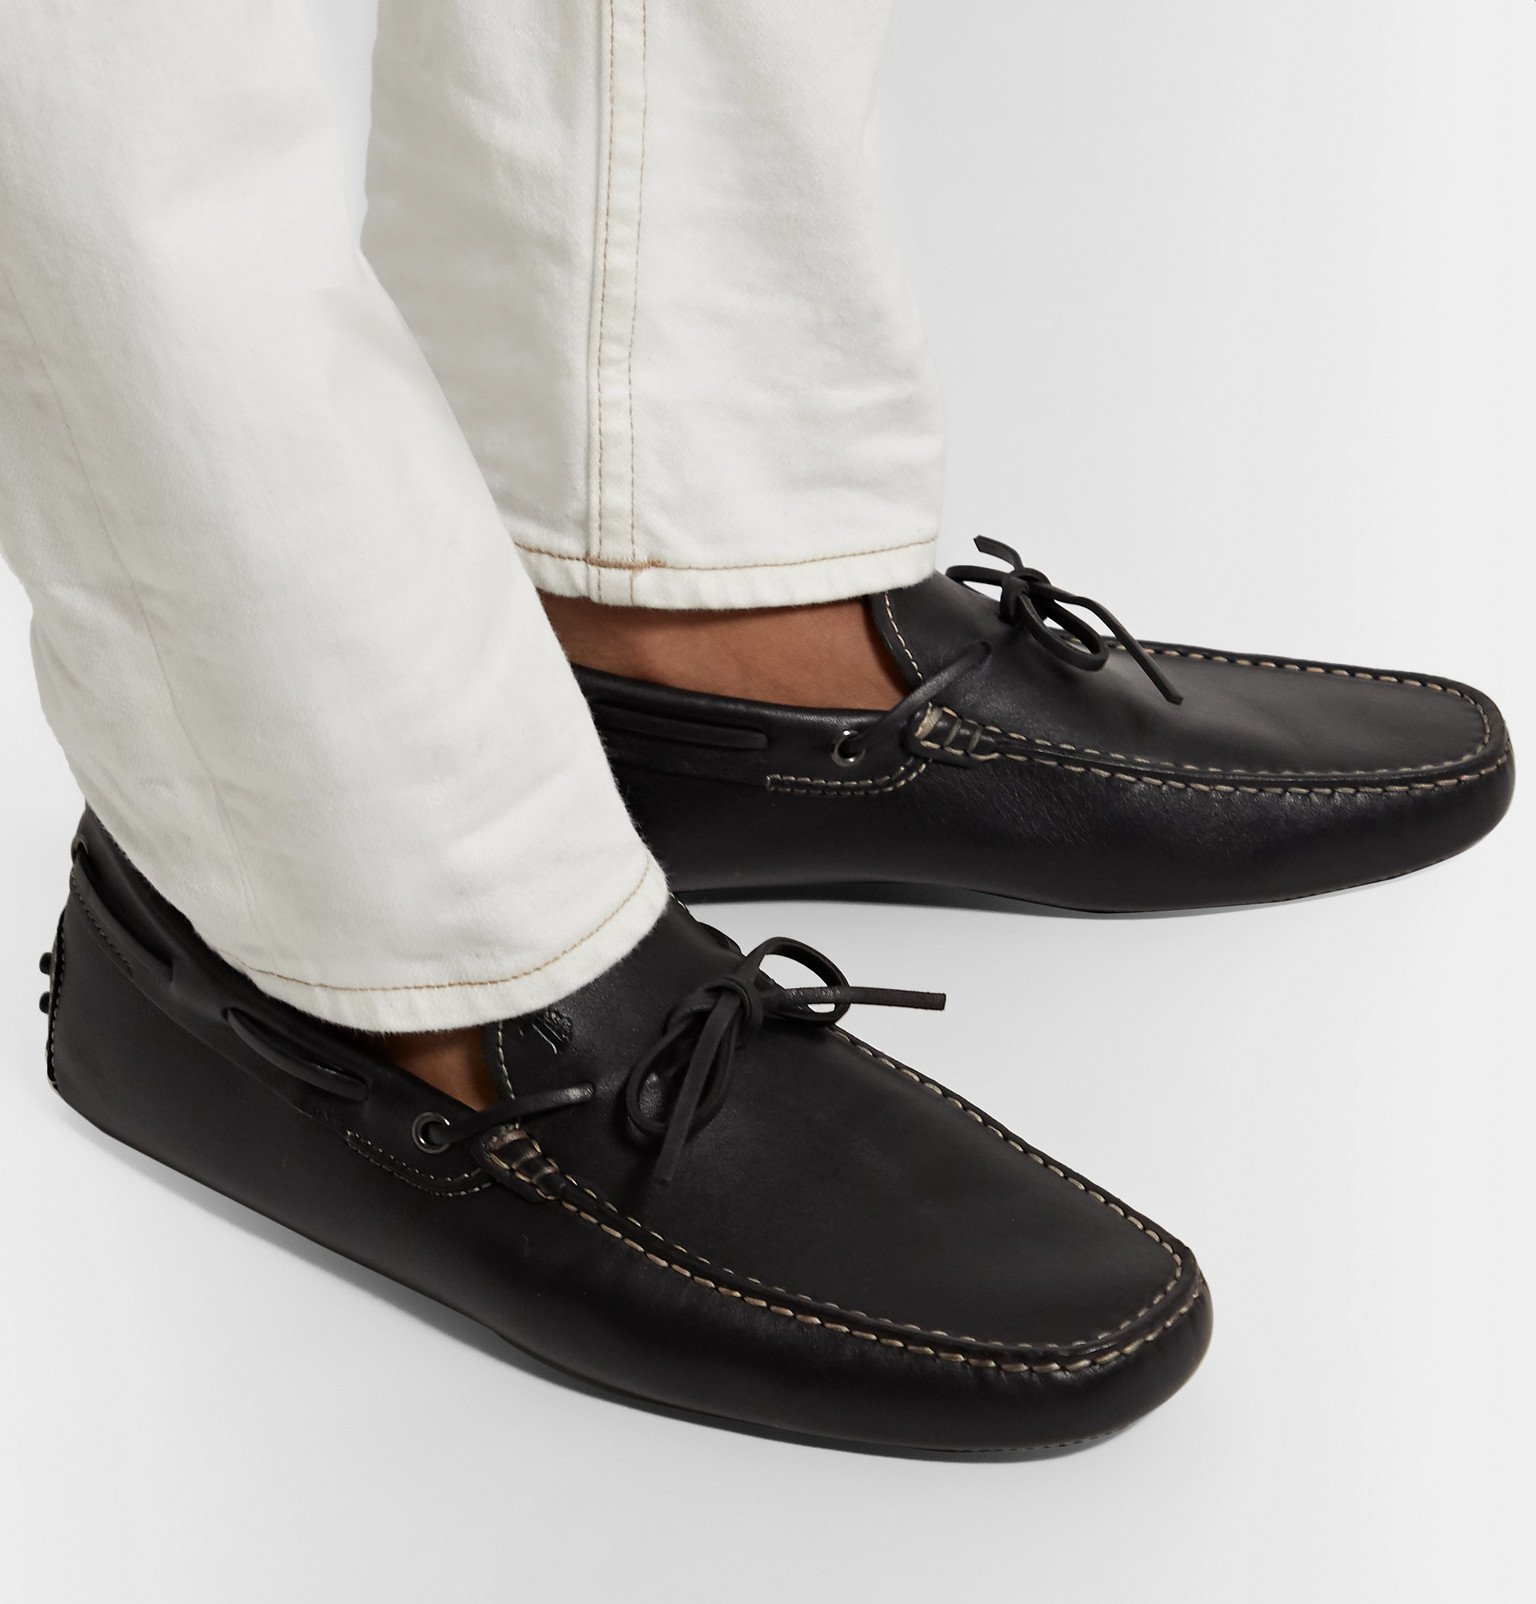 Tod's - Gommino Leather Driving Shoes - Black